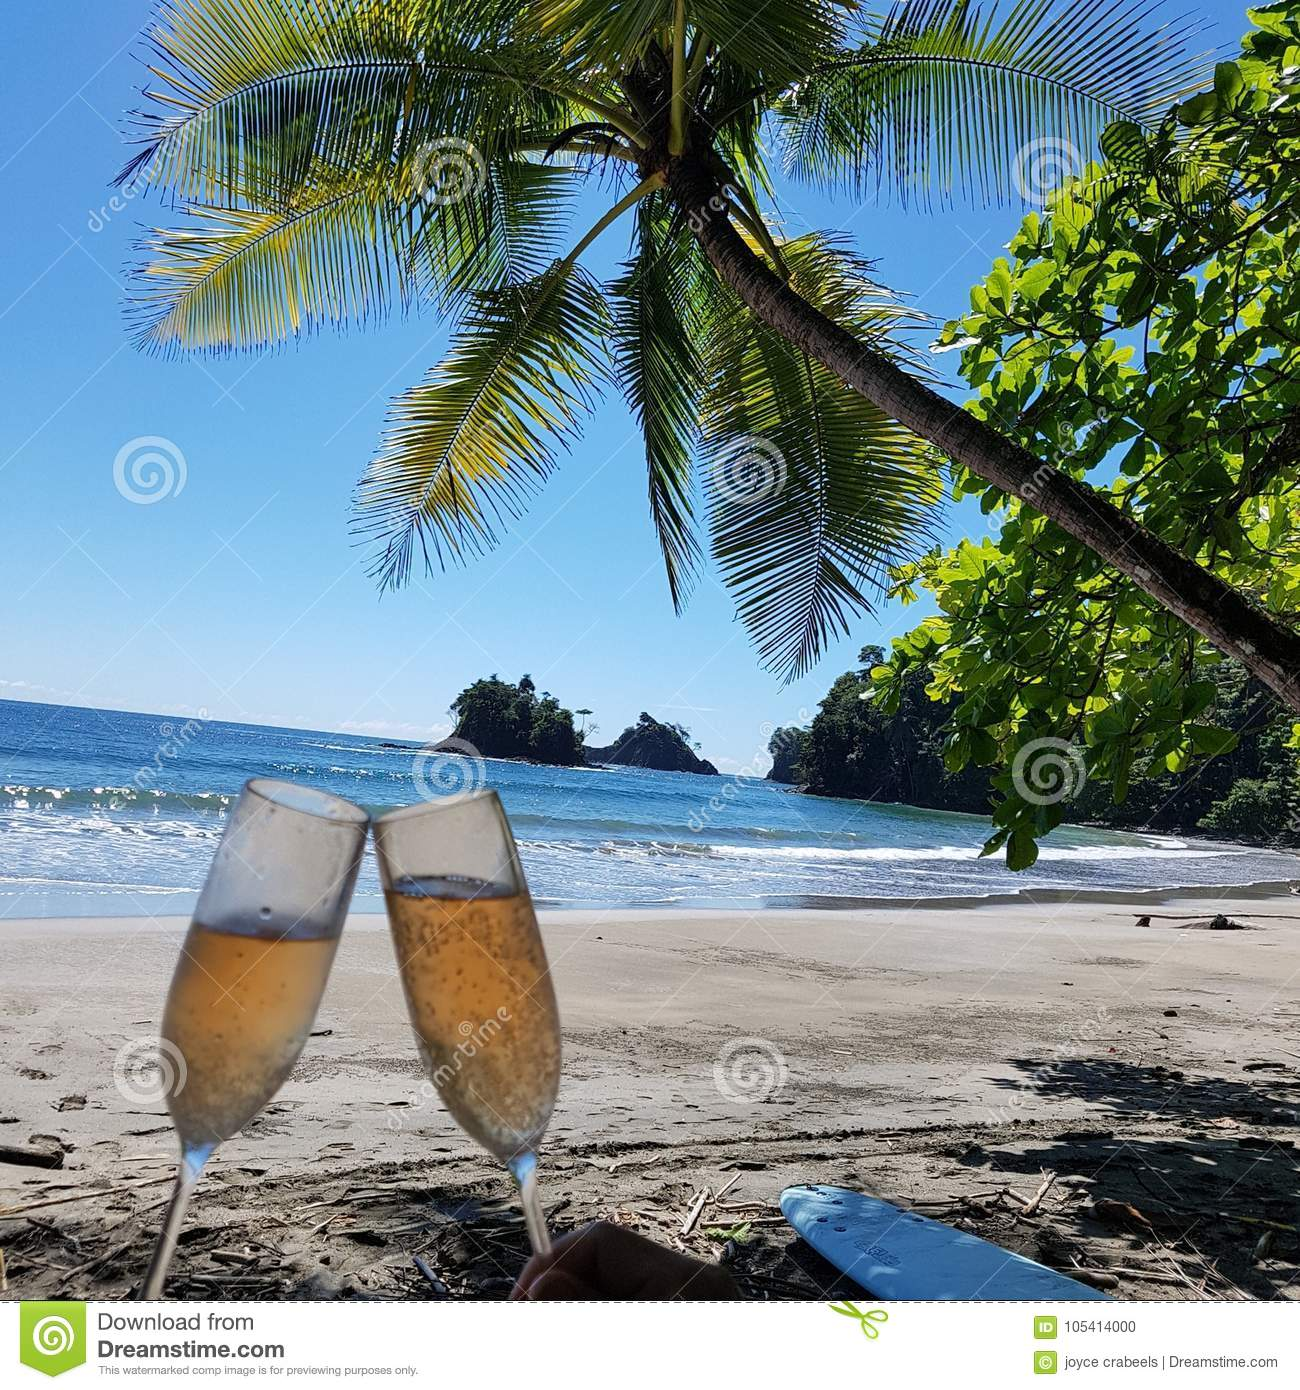 Beach Champagne: Champagne On The Beach! Stock Photo. Image Of Glass